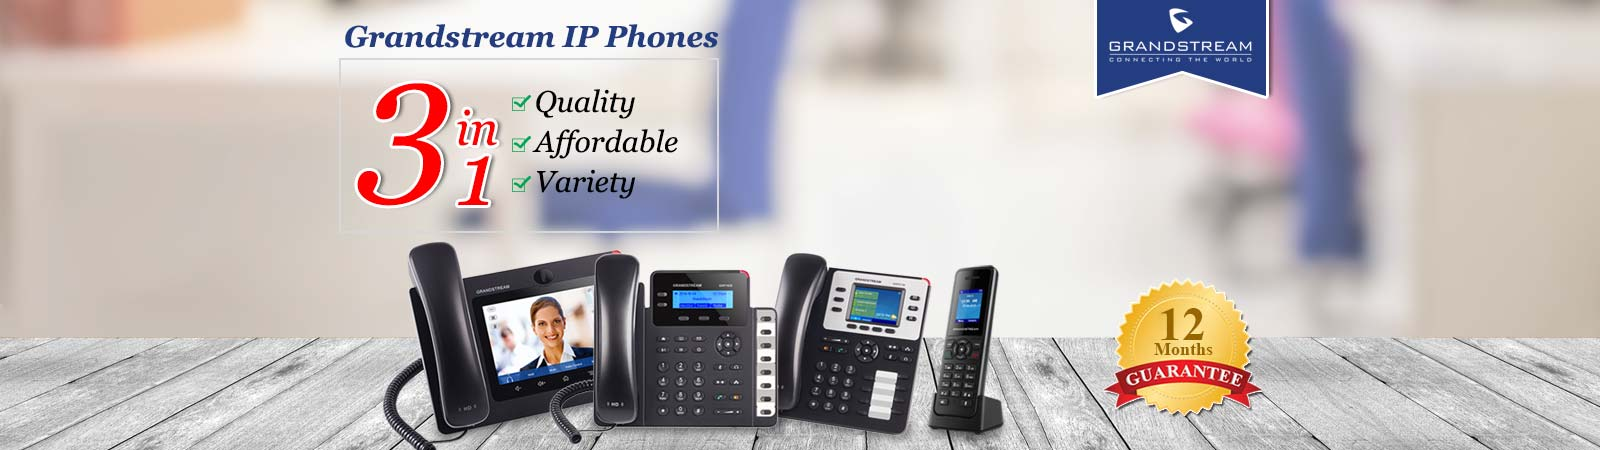 grandstream - ip - phones